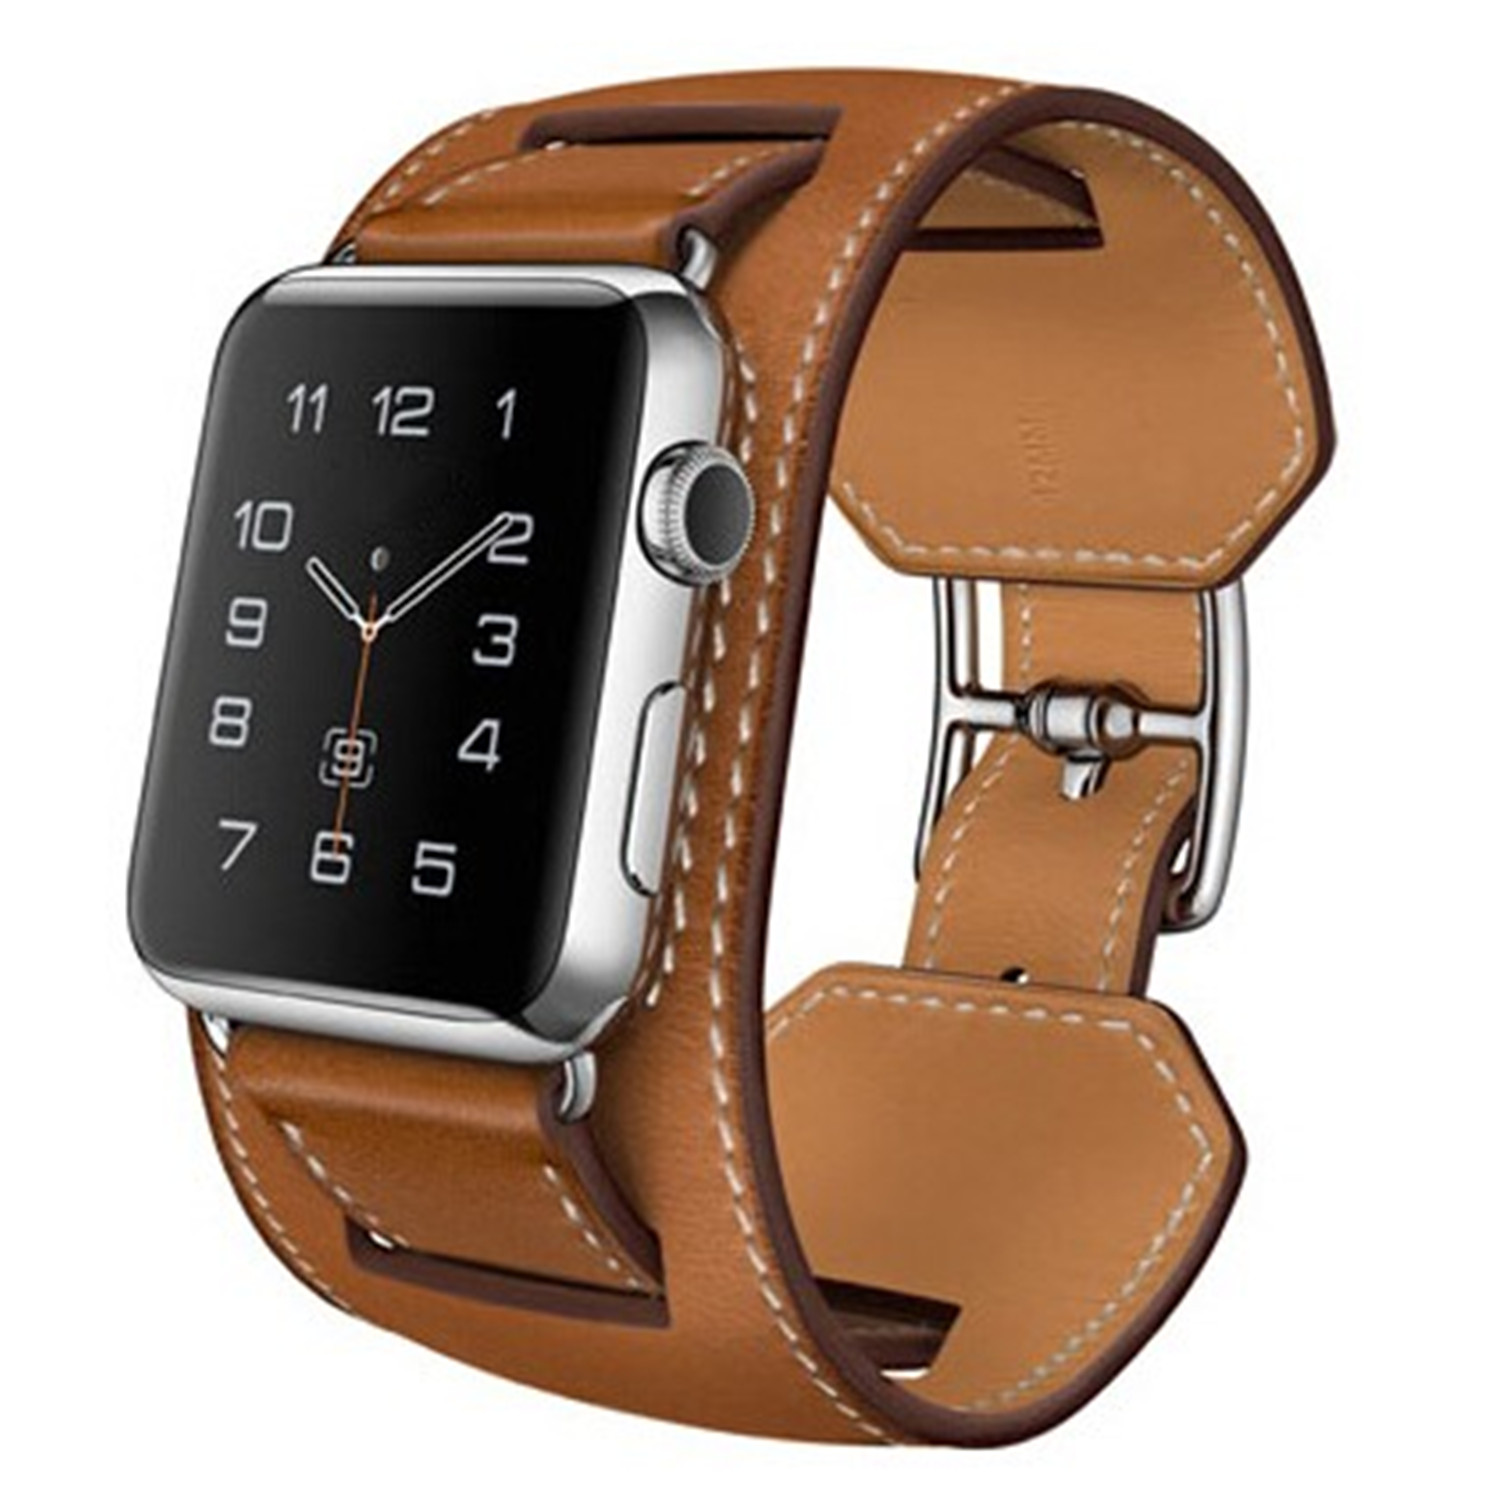 38 42mm 1:1 Original Design Cuff Bracelet Leather Band For Apple Watch Band  Wide